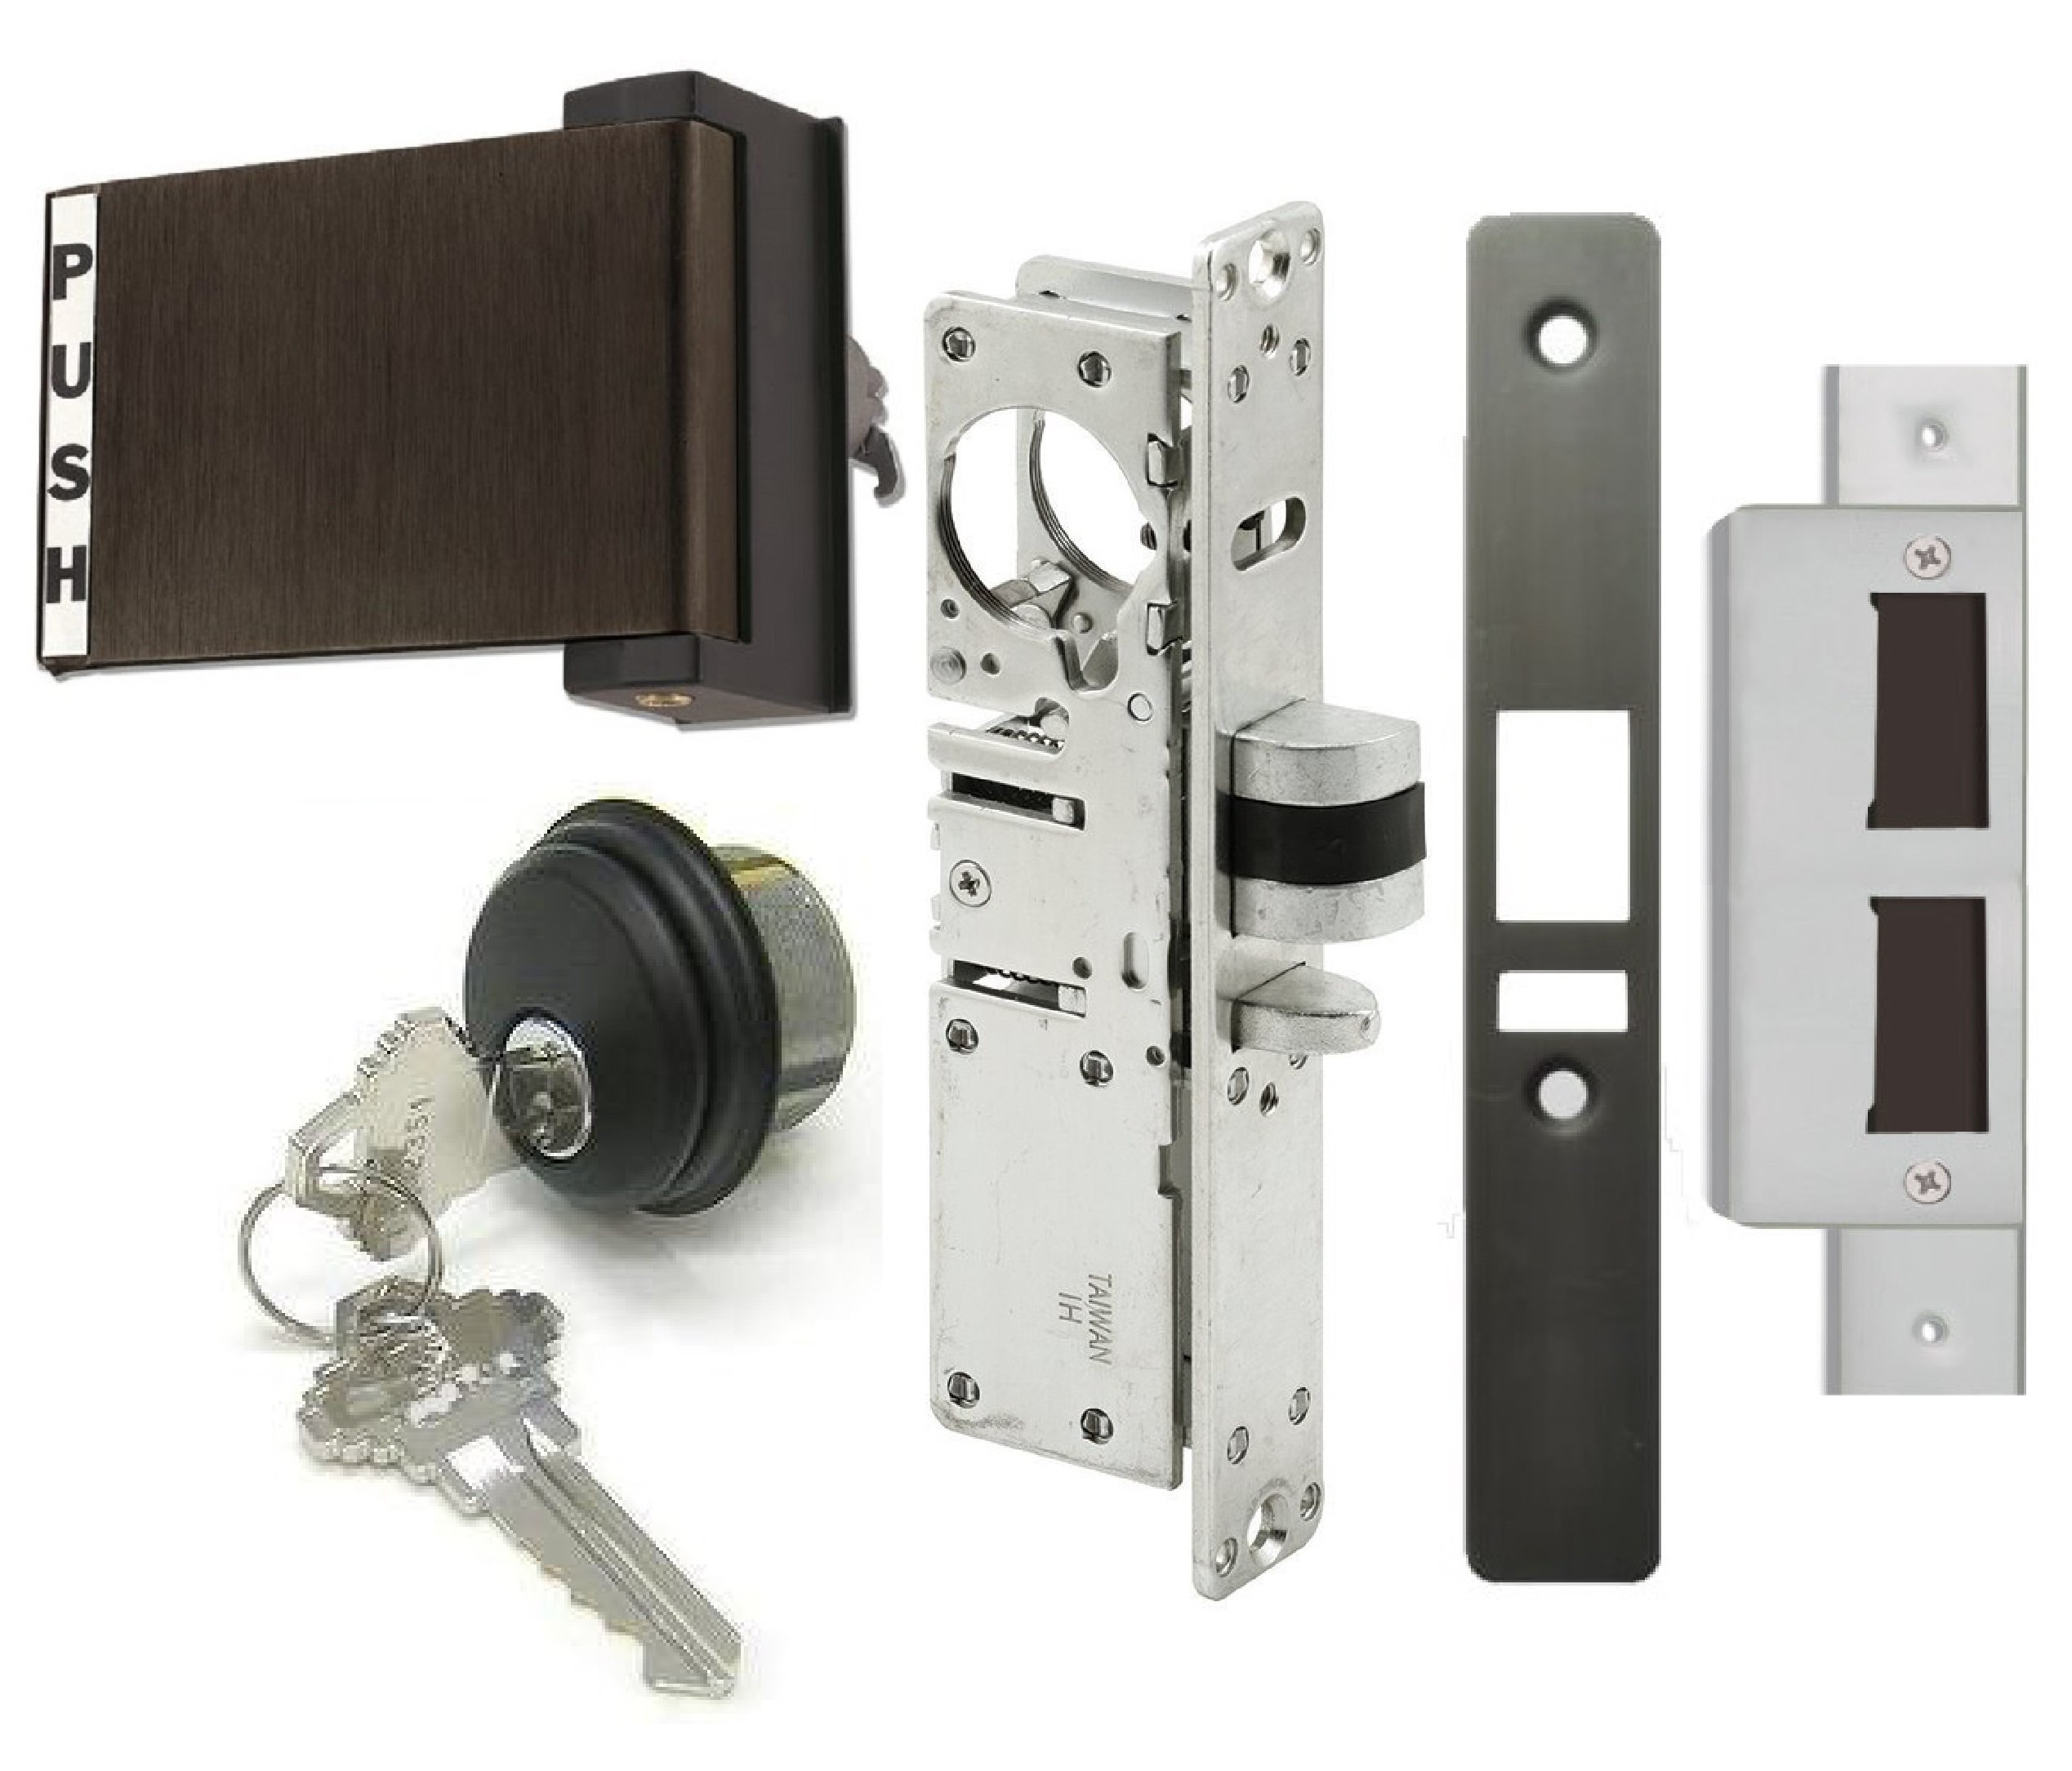 Adams Rite Style Latch Storefront Door Mortise Deadlatch Lock Exit Paddle Handle Kit w/Cylinder & Keys, in Duronotic (1-1/8'' Backset, Push Door to Left)